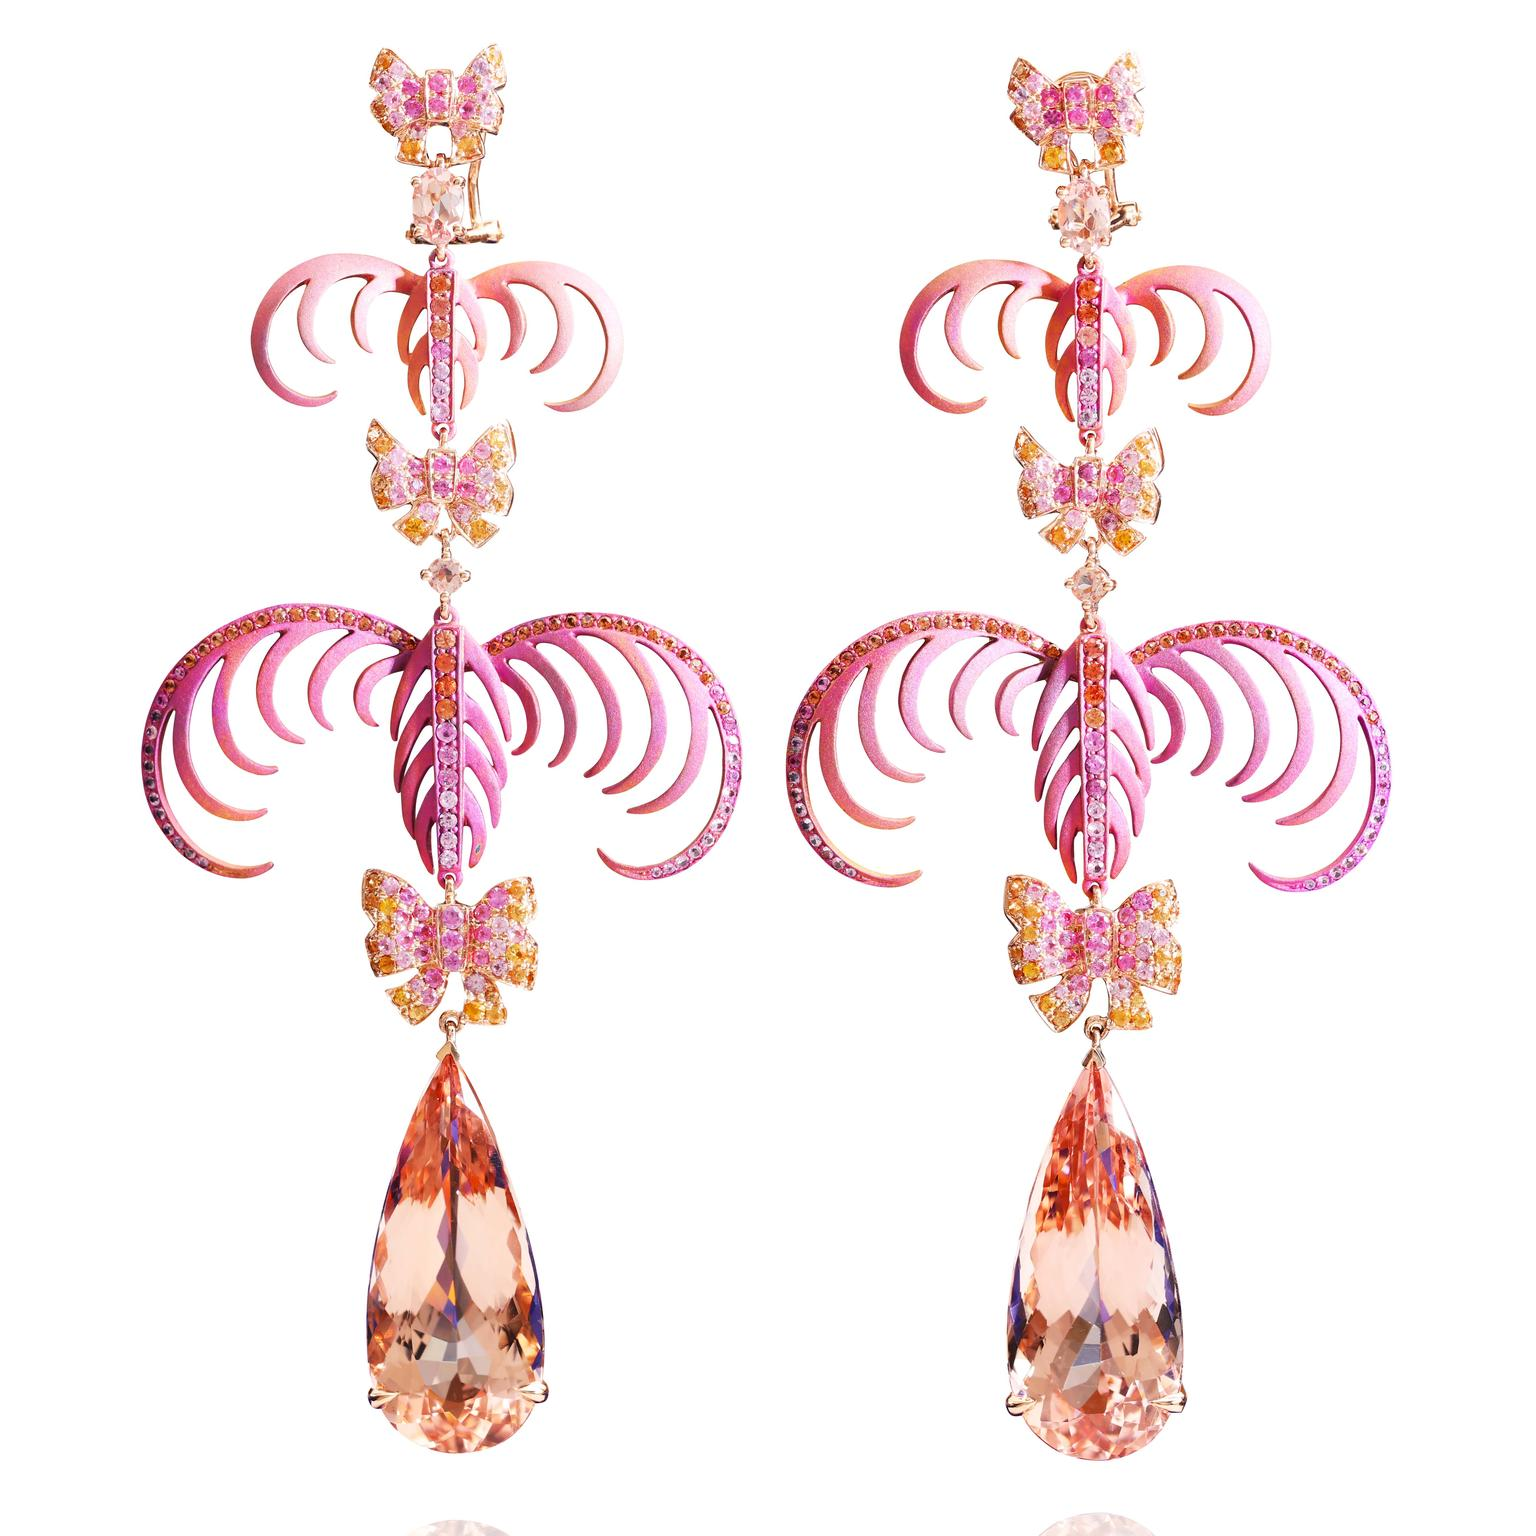 Lydia Courteille La Vie en Rose earrings